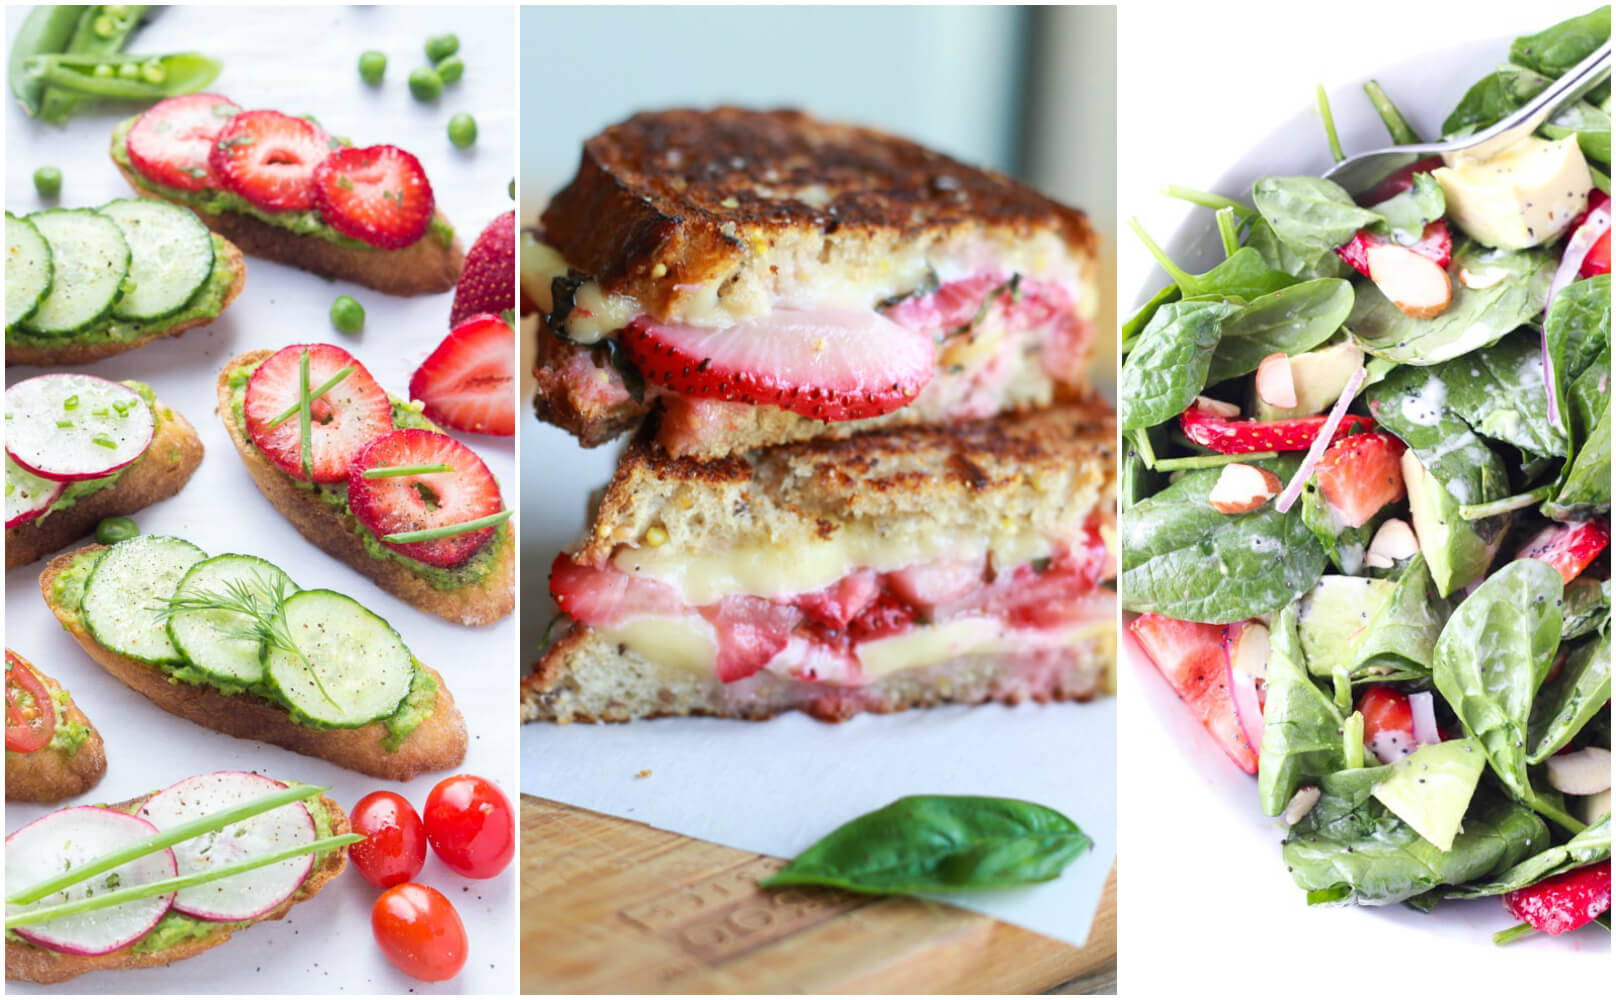 Best strawberry recipes + guide to spring produce | littlebroken.com @littlebroken